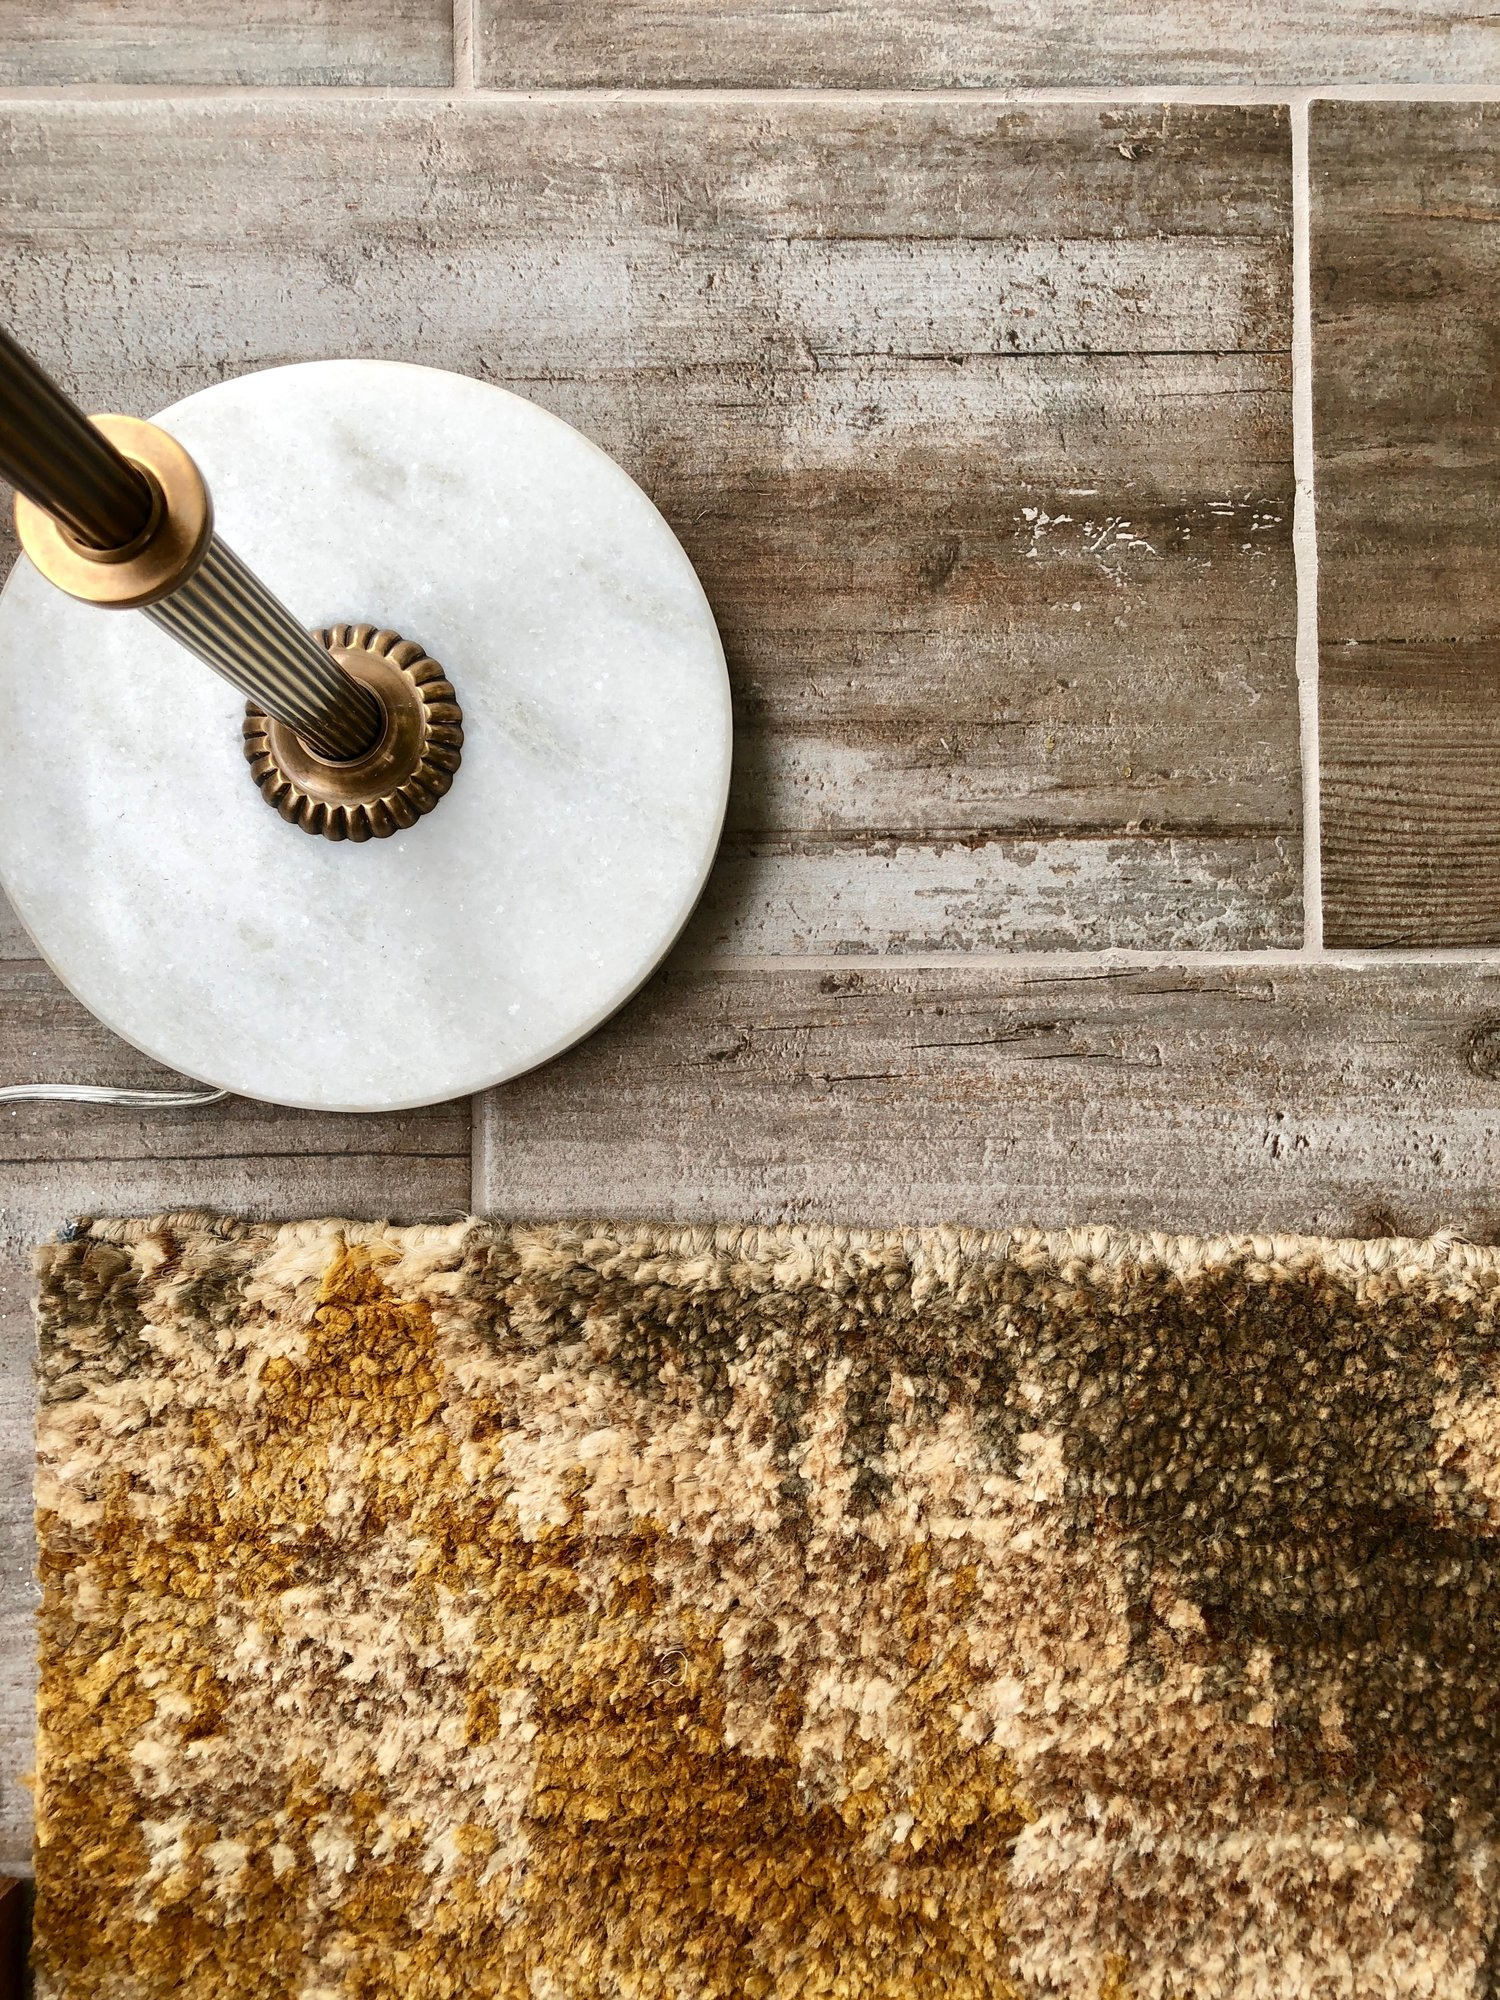 XV-04 Grey/Gold Soft Jute Rug 2x3 by Loloi {$140.00} with a Brass & Marble Floor Lamp {$836.00}